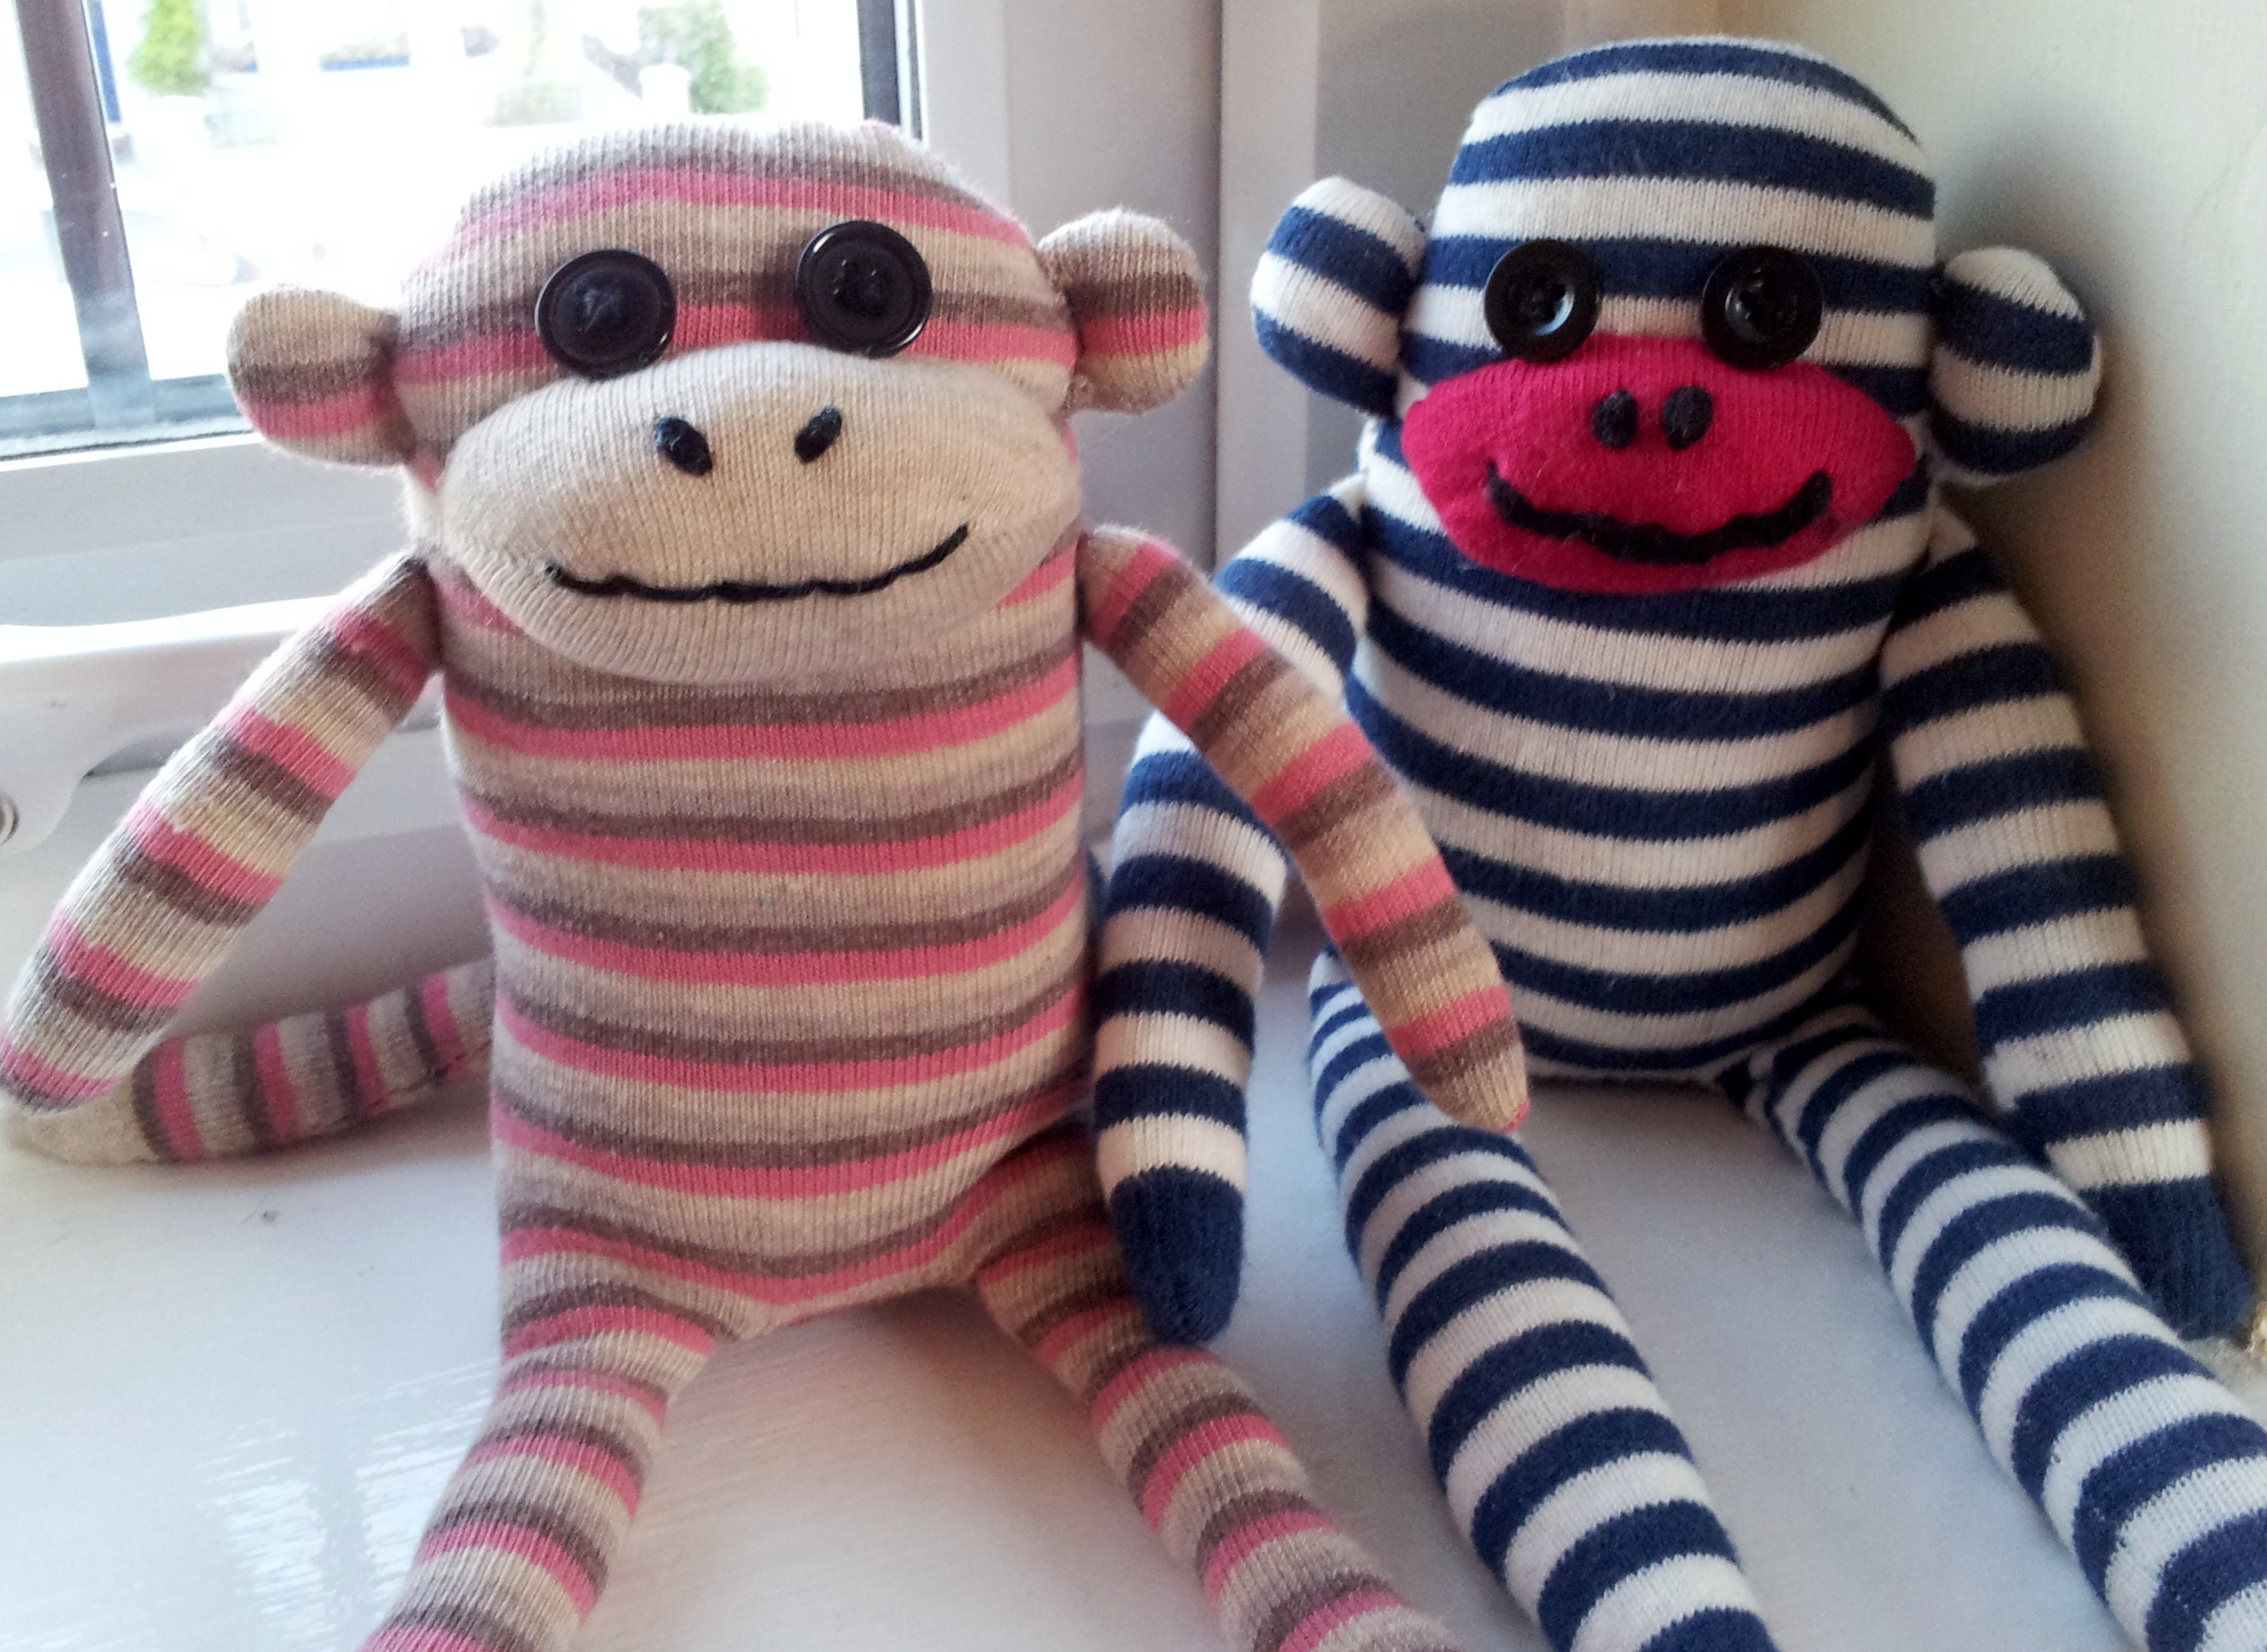 How to make a Sock Monkey | thestitchsharer